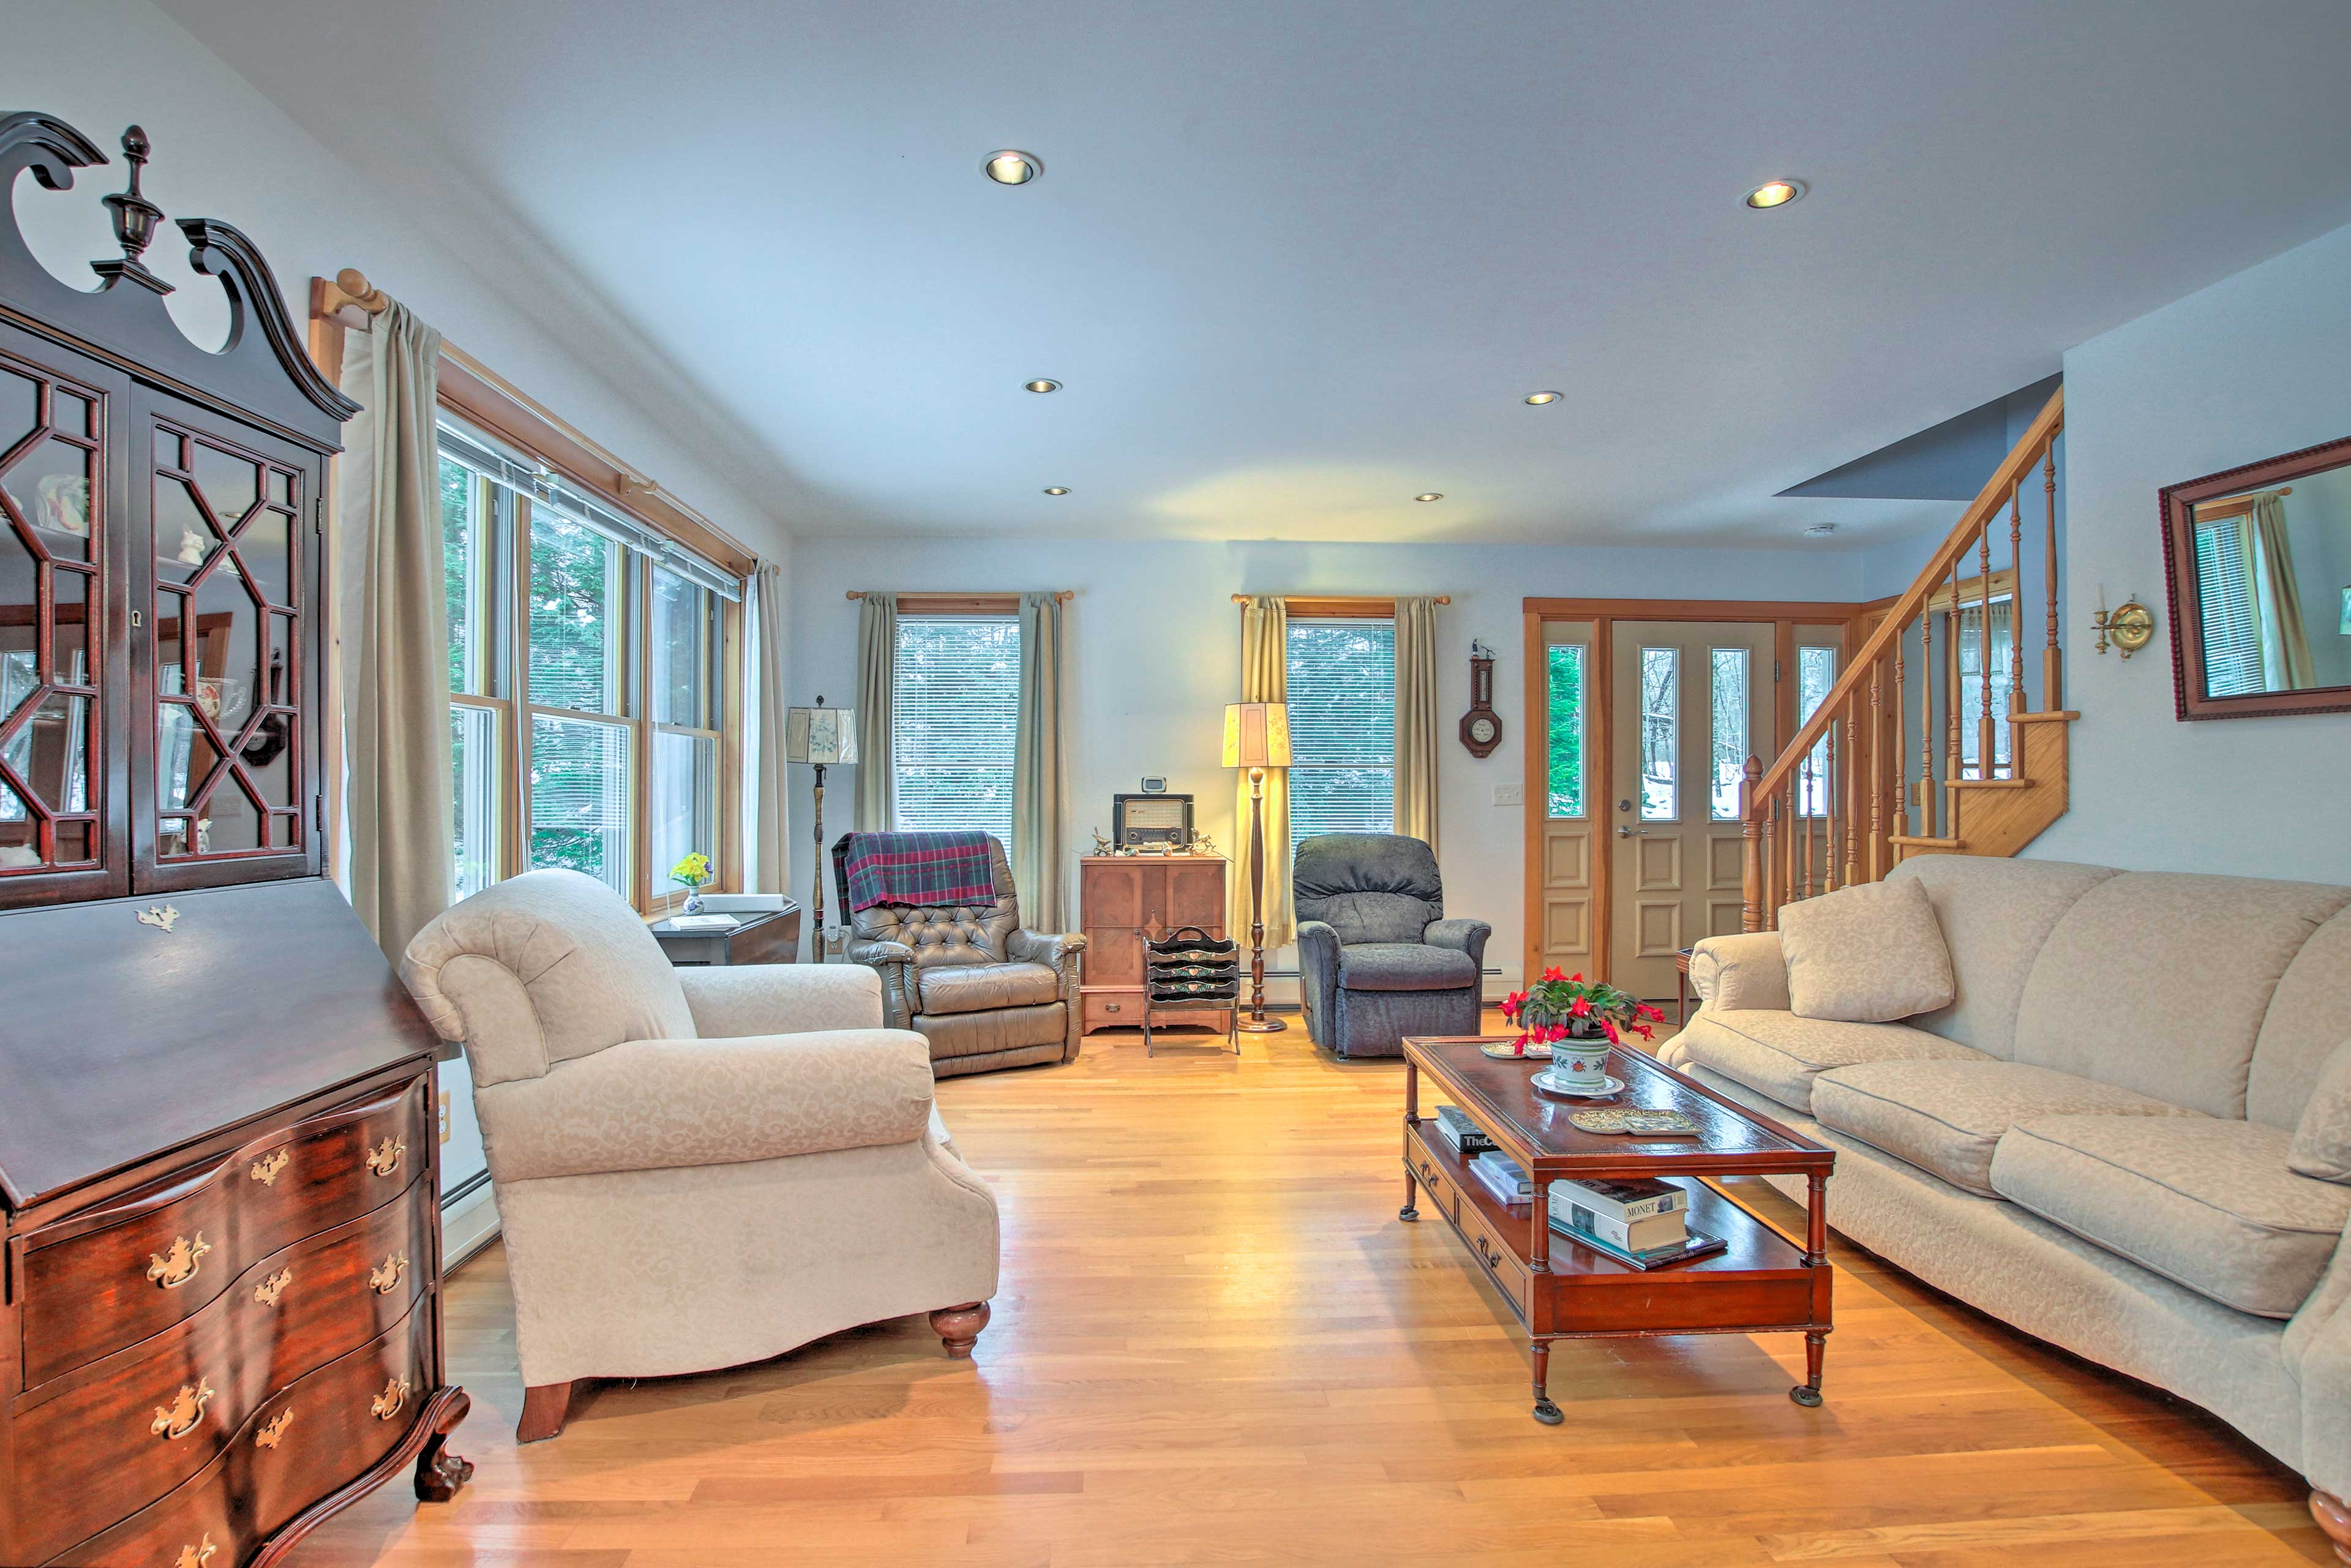 Inside, discover 2,000 square feet of living space.